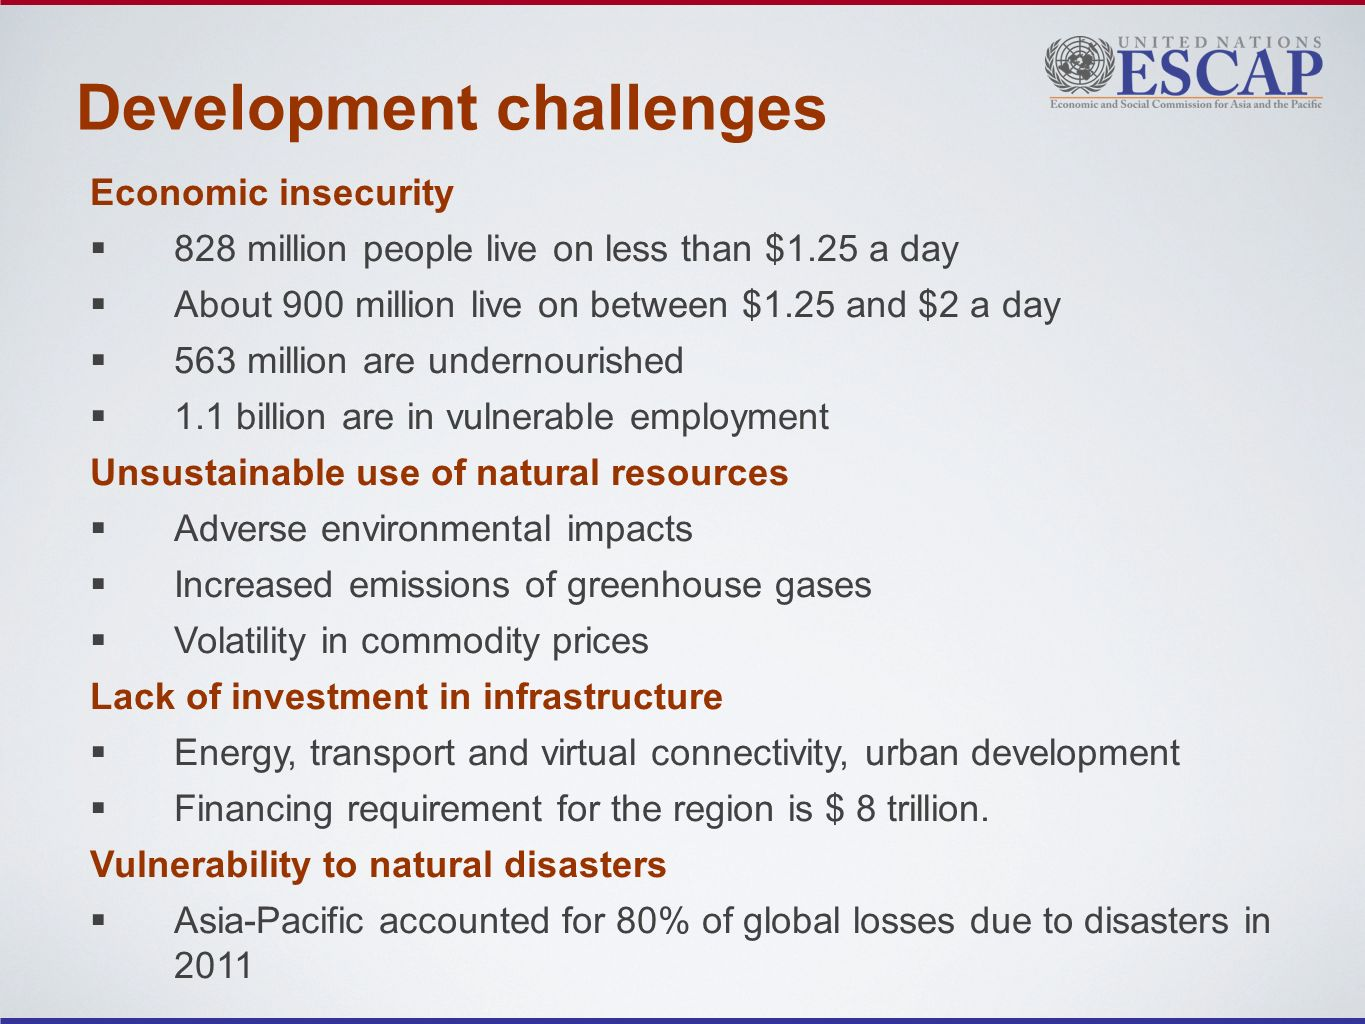 Development challenges Economic insecurity 828 million people live on less than $1.25 a day About 900 million live on between $1.25 and $2 a day 563 million are undernourished 1.1 billion are in vulnerable employment Unsustainable use of natural resources Adverse environmental impacts Increased emissions of greenhouse gases Volatility in commodity prices Lack of investment in infrastructure Energy, transport and virtual connectivity, urban development Financing requirement for the region is $ 8 trillion.